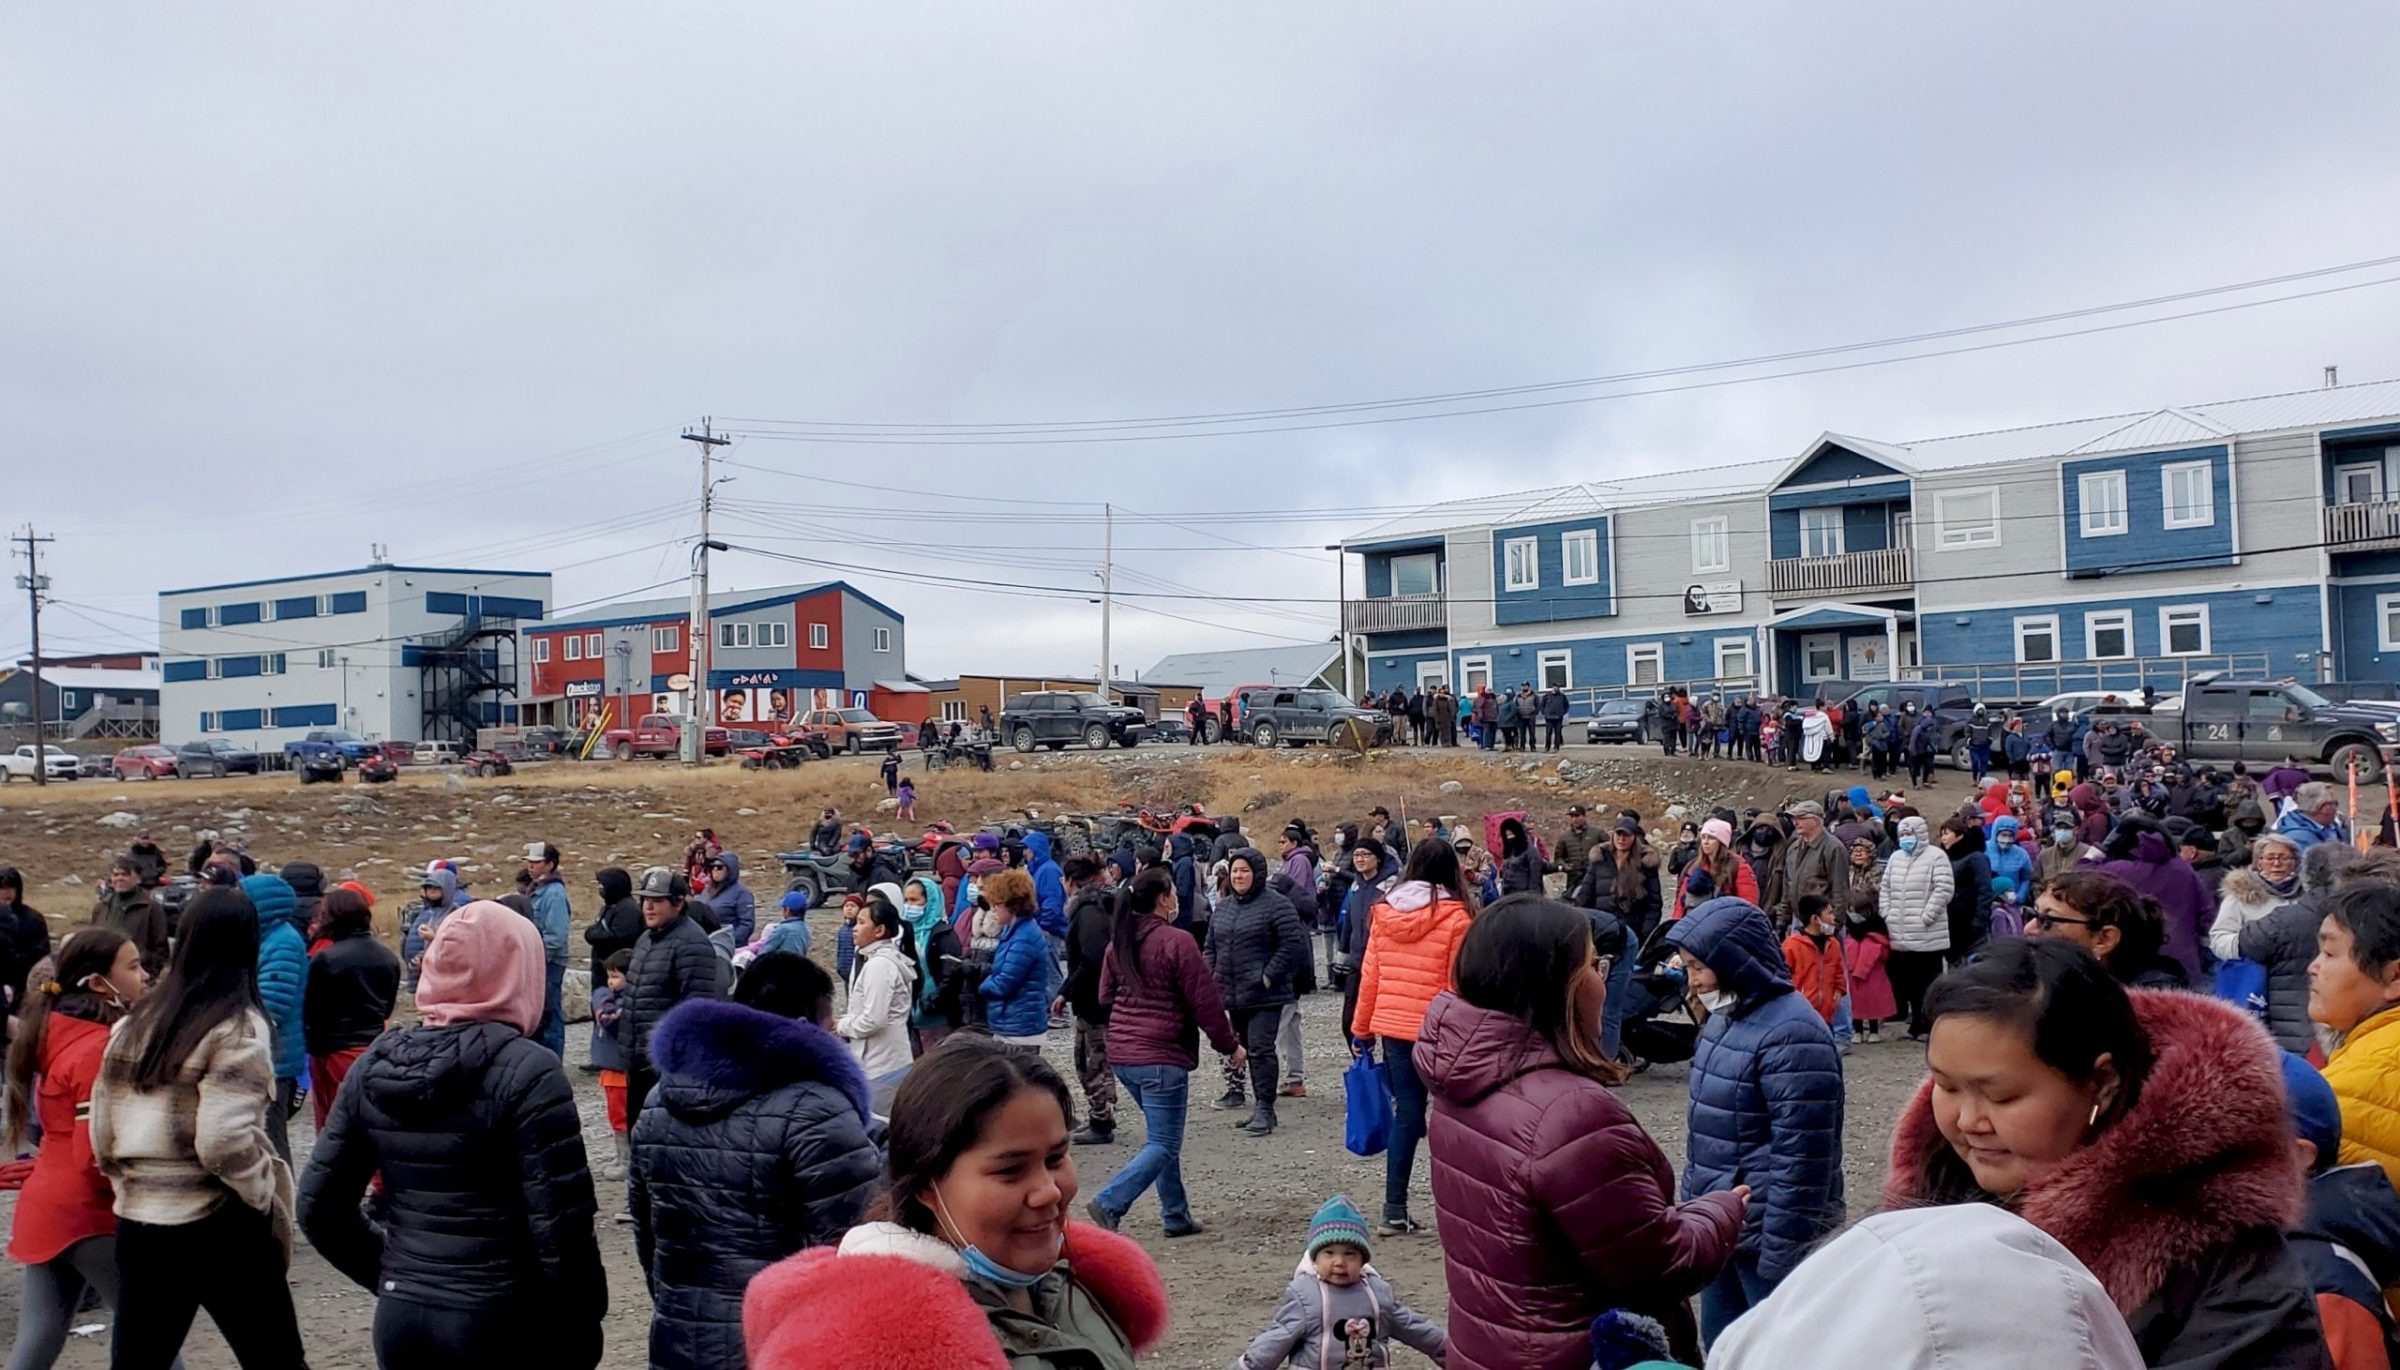 Hundreds of Rankin Inlet residents gather at an arena-naming ceremony on Wednesday. Darren Flynn, the hamlet's senior administrative officer, said the event, which included a community barbecue, bouncy houses and over $30,000 in prizes to be won — like an ATV — exceeded expectations. The arena was named Agnico Eagle Arena, after the mining company that has signed a 10-year agreement to contribute $50,000 annually to the hamlet, Flynn said. (Photo by Pam Simons)